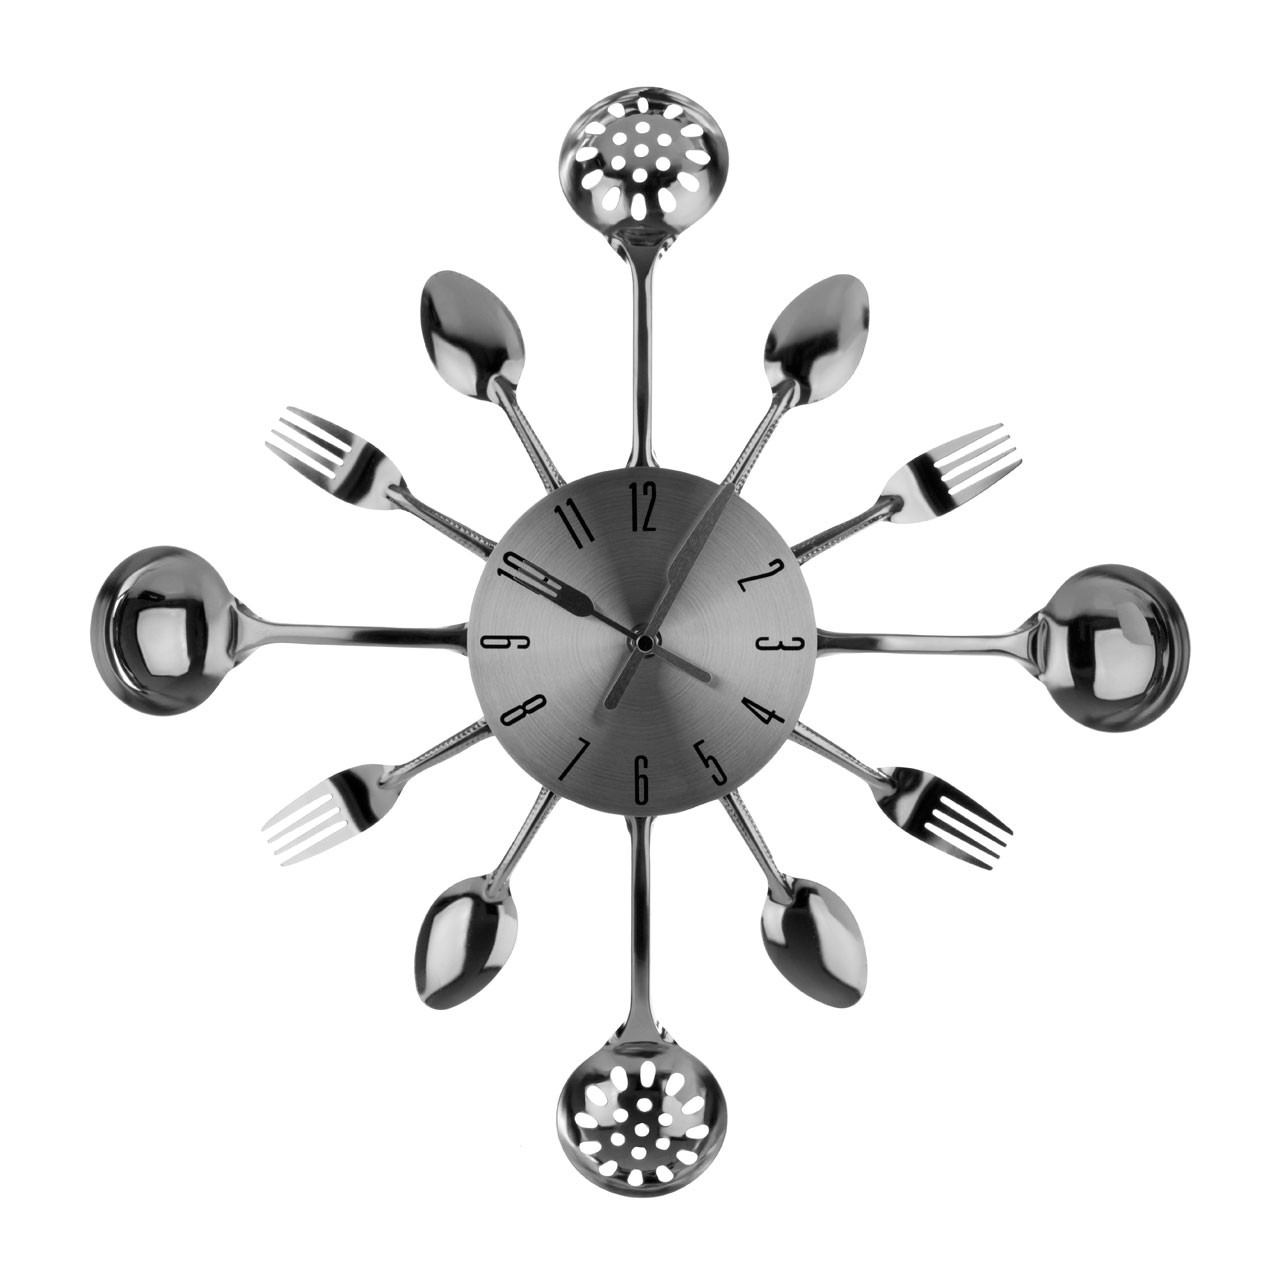 Prime Furnishing Cutlery Wall Clock, Chrome/Metal